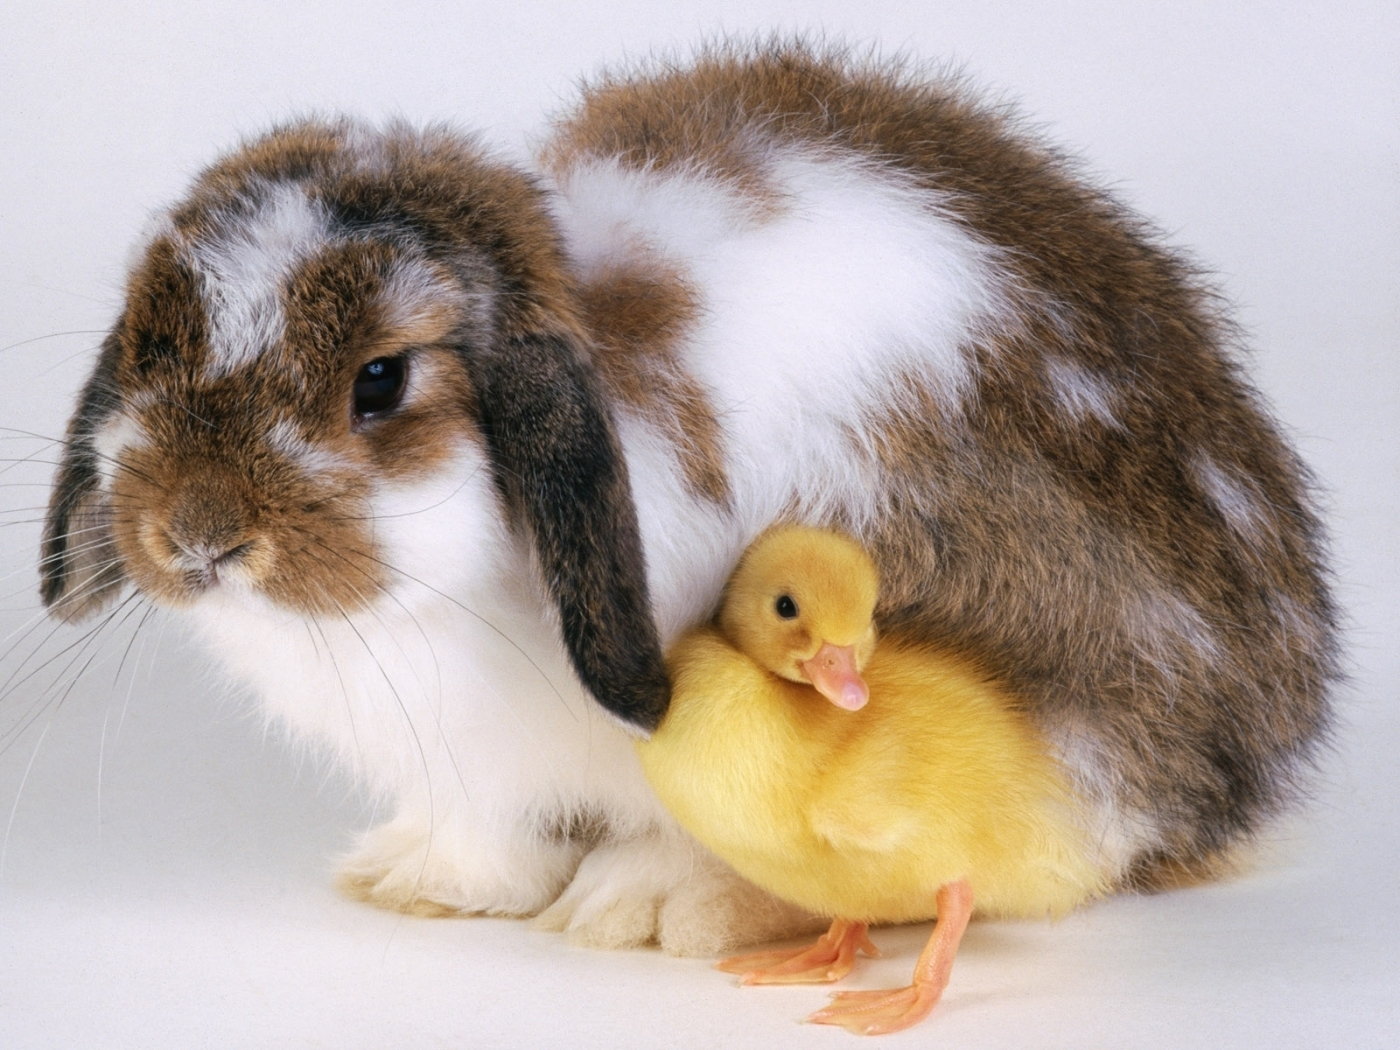 25688 download wallpaper Animals, Birds, Ducks, Rabbits screensavers and pictures for free